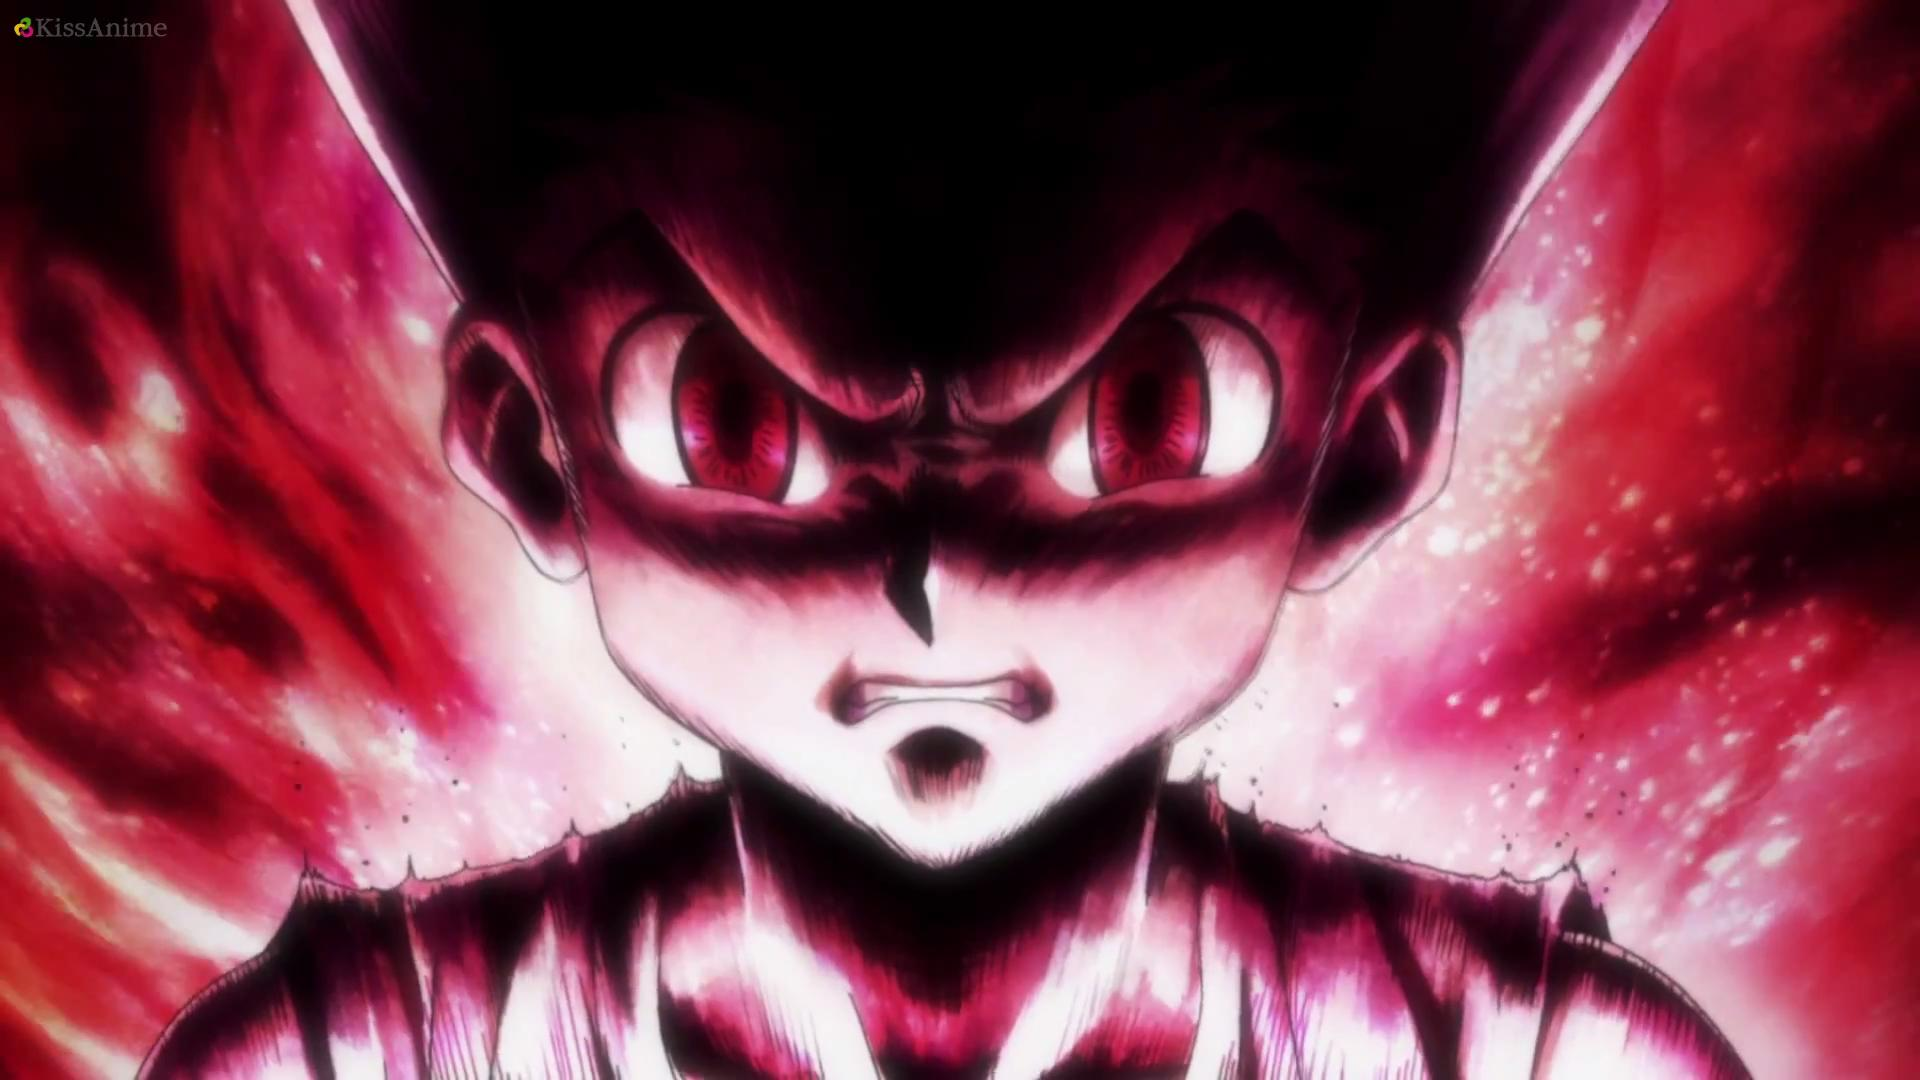 Angry Gon Wallpaper 33 Wallpapers Adorable Wallpapers